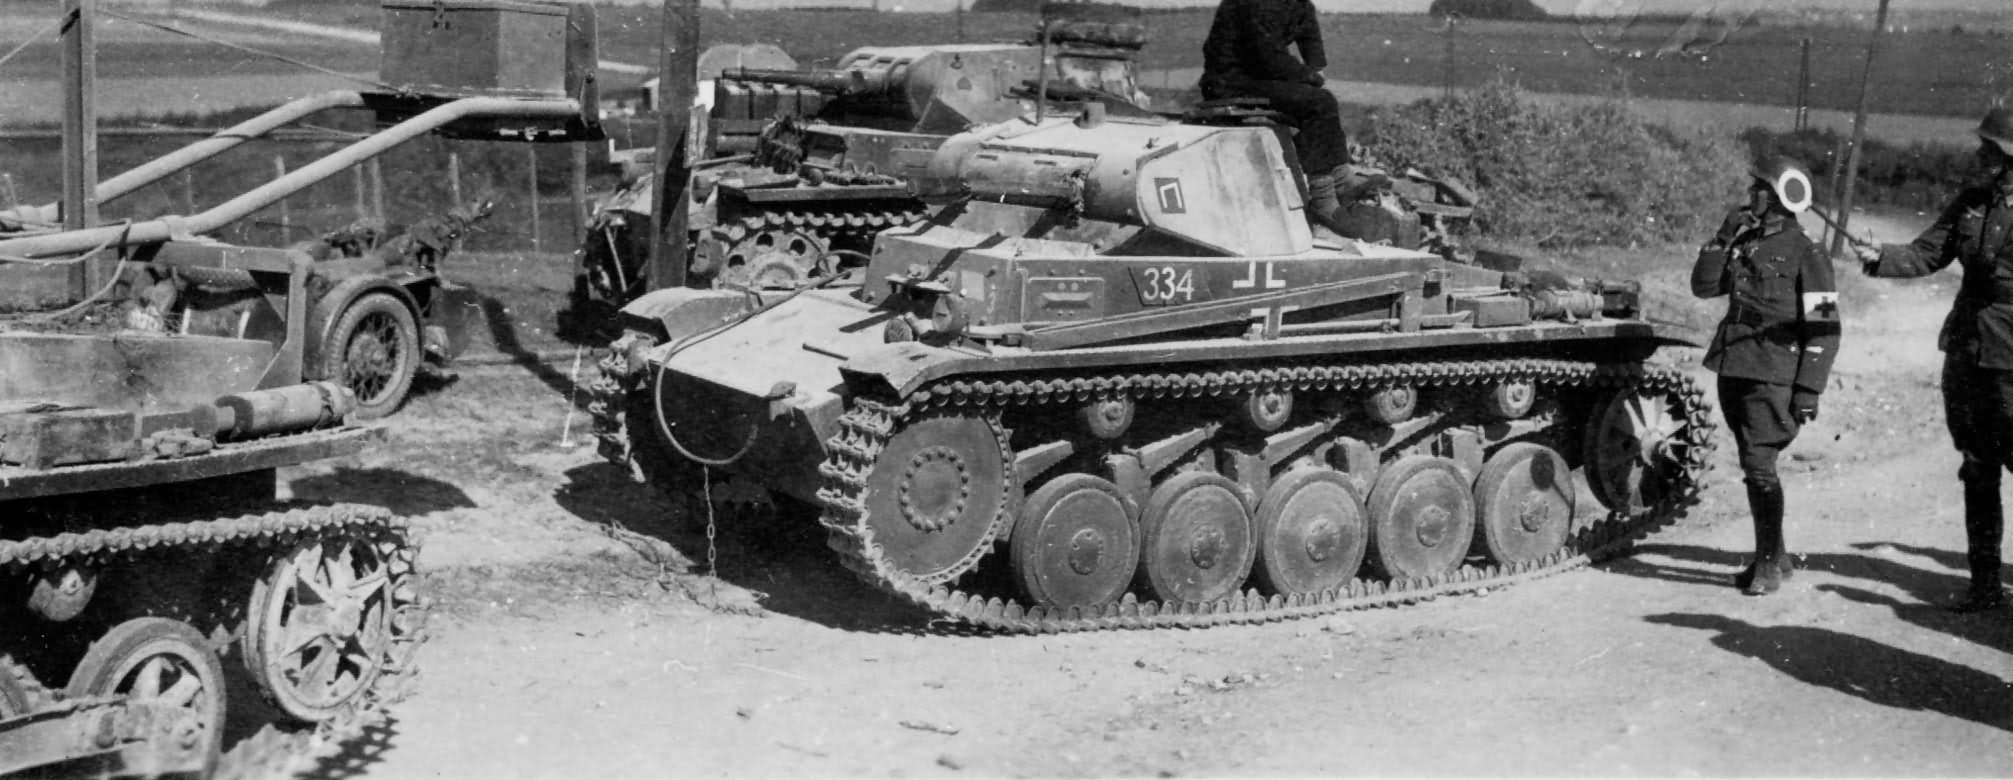 Panzer II ausf C late number 334